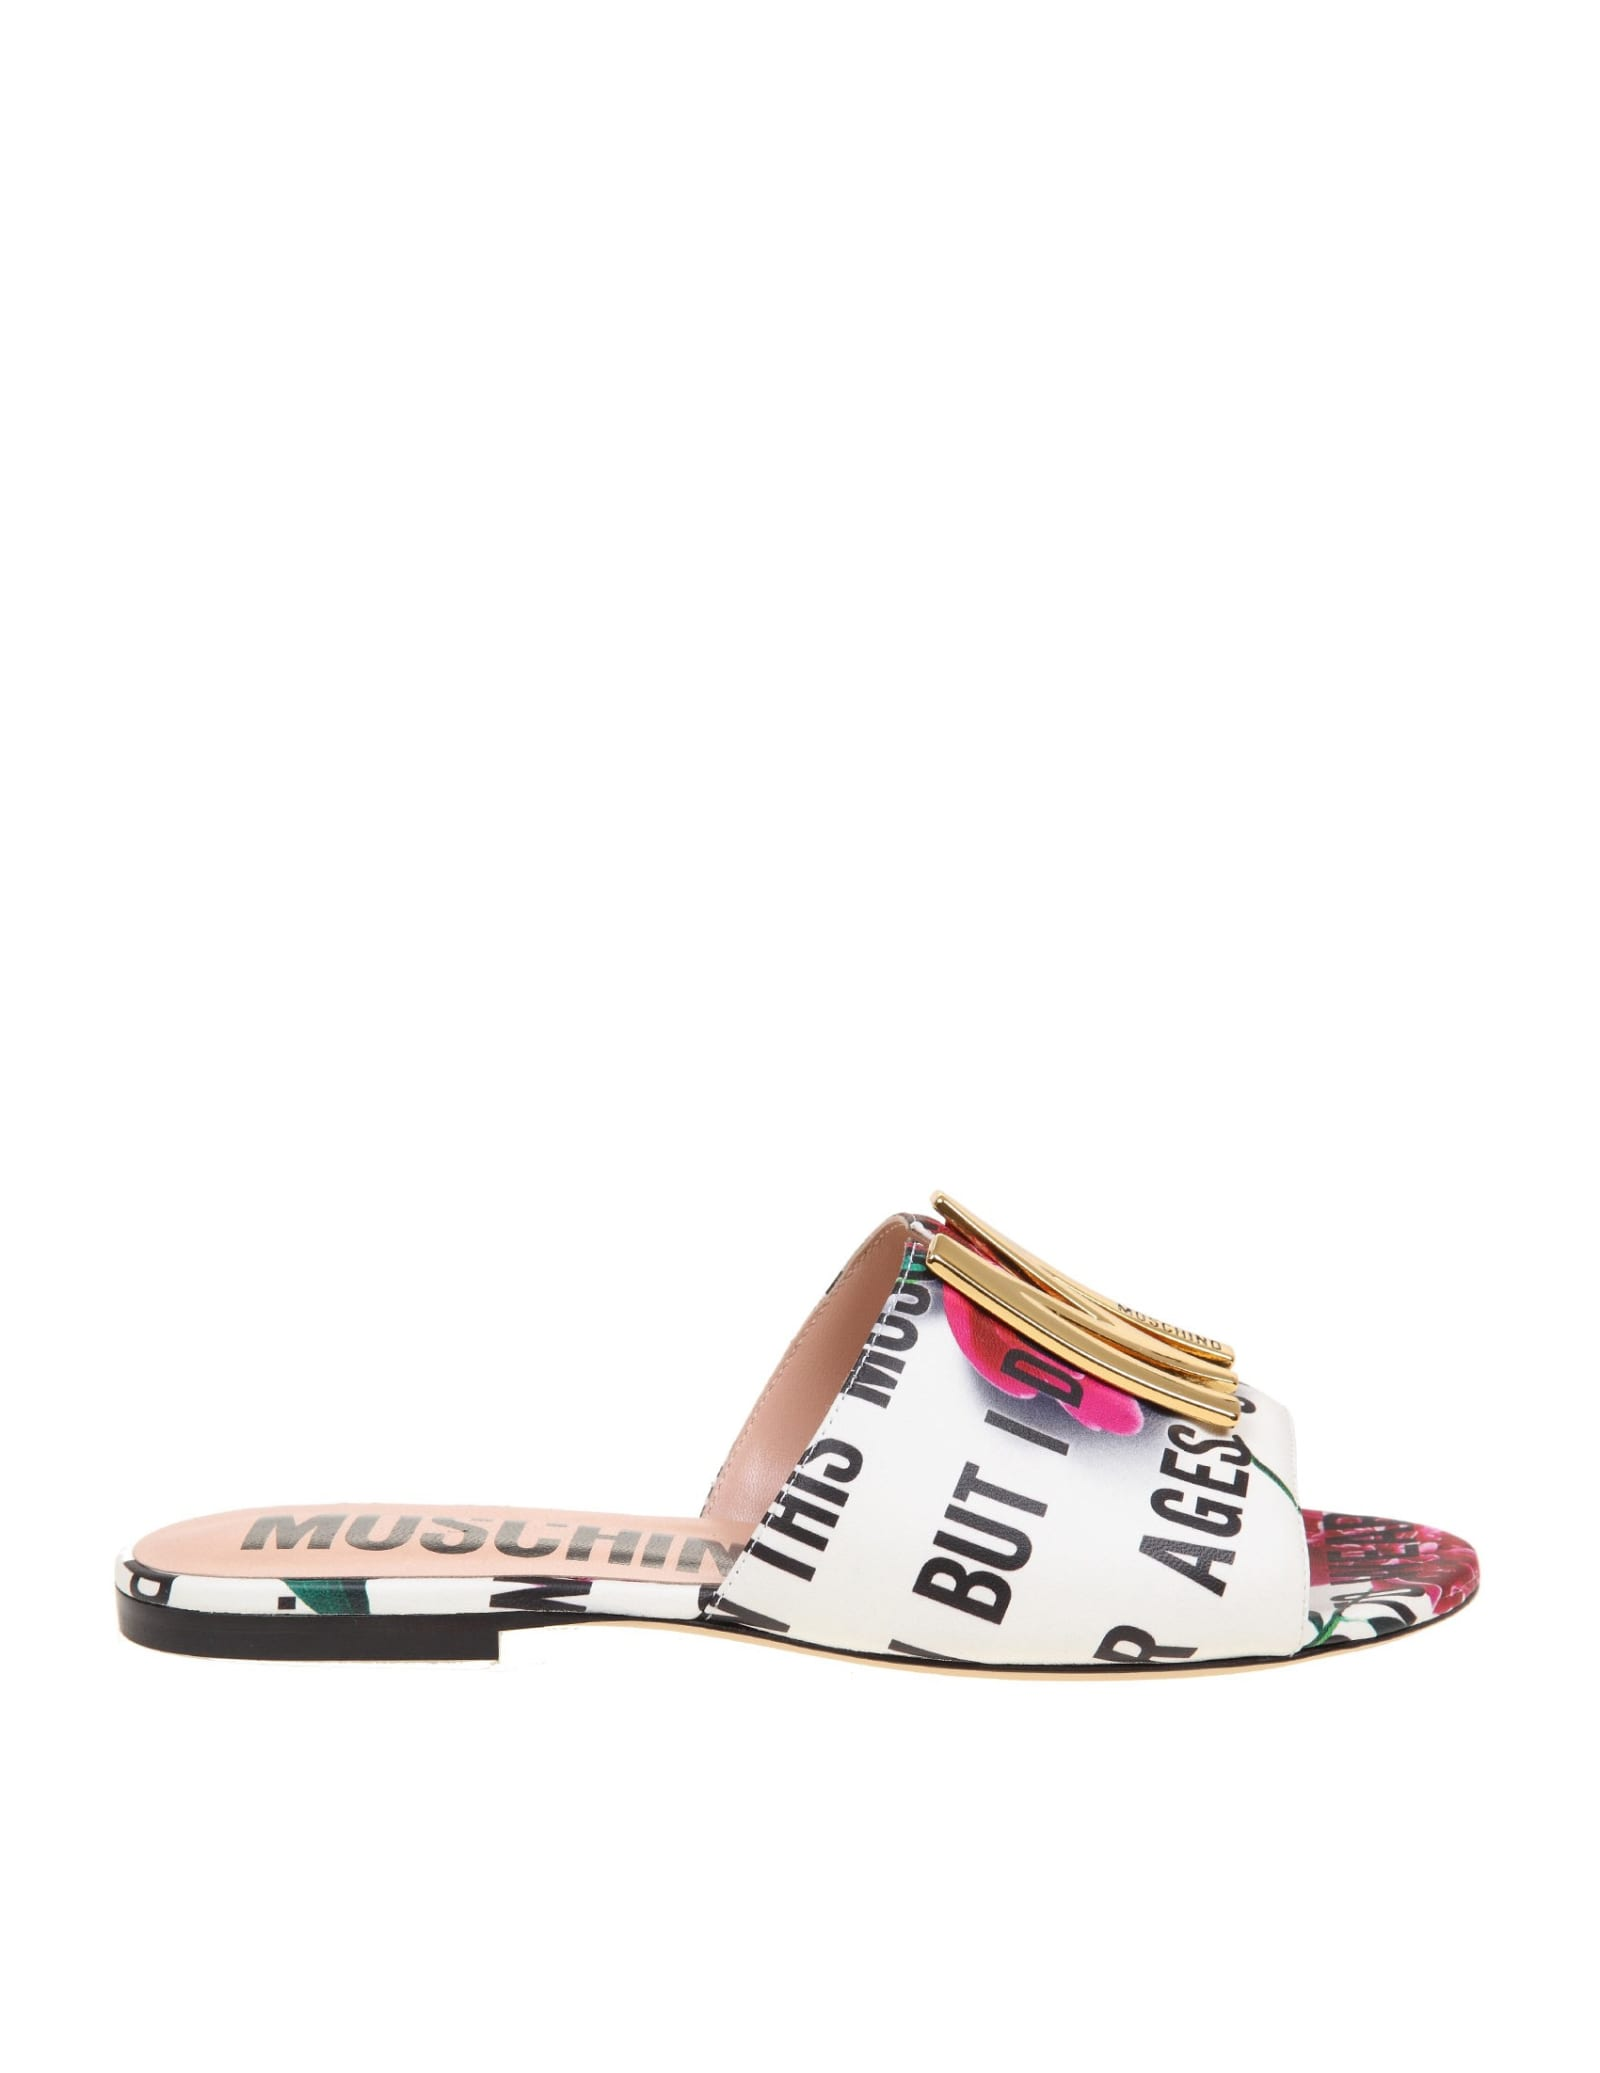 Moschino FLAT SANDAL IN CALFSKIN WITH FLOWER FANTASY